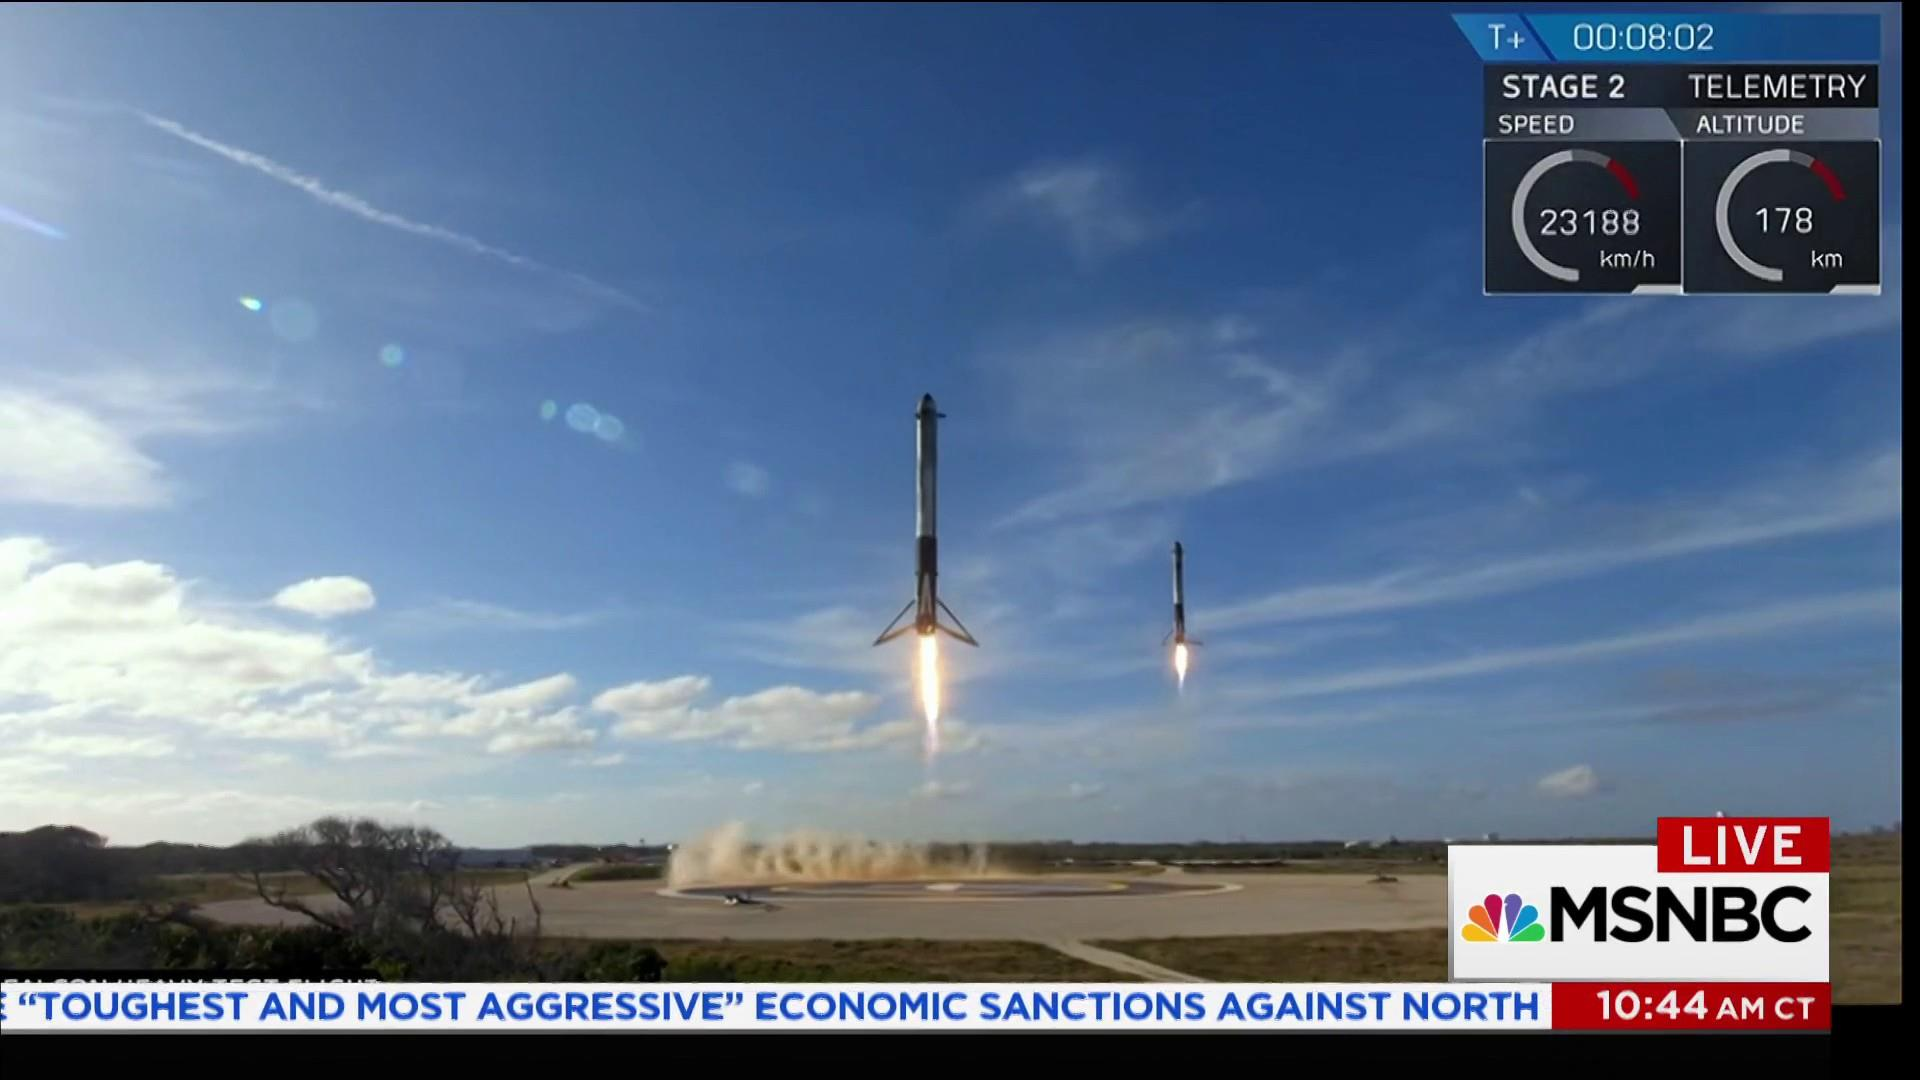 Astronauts react to SpaceX rocket launch toward Mars